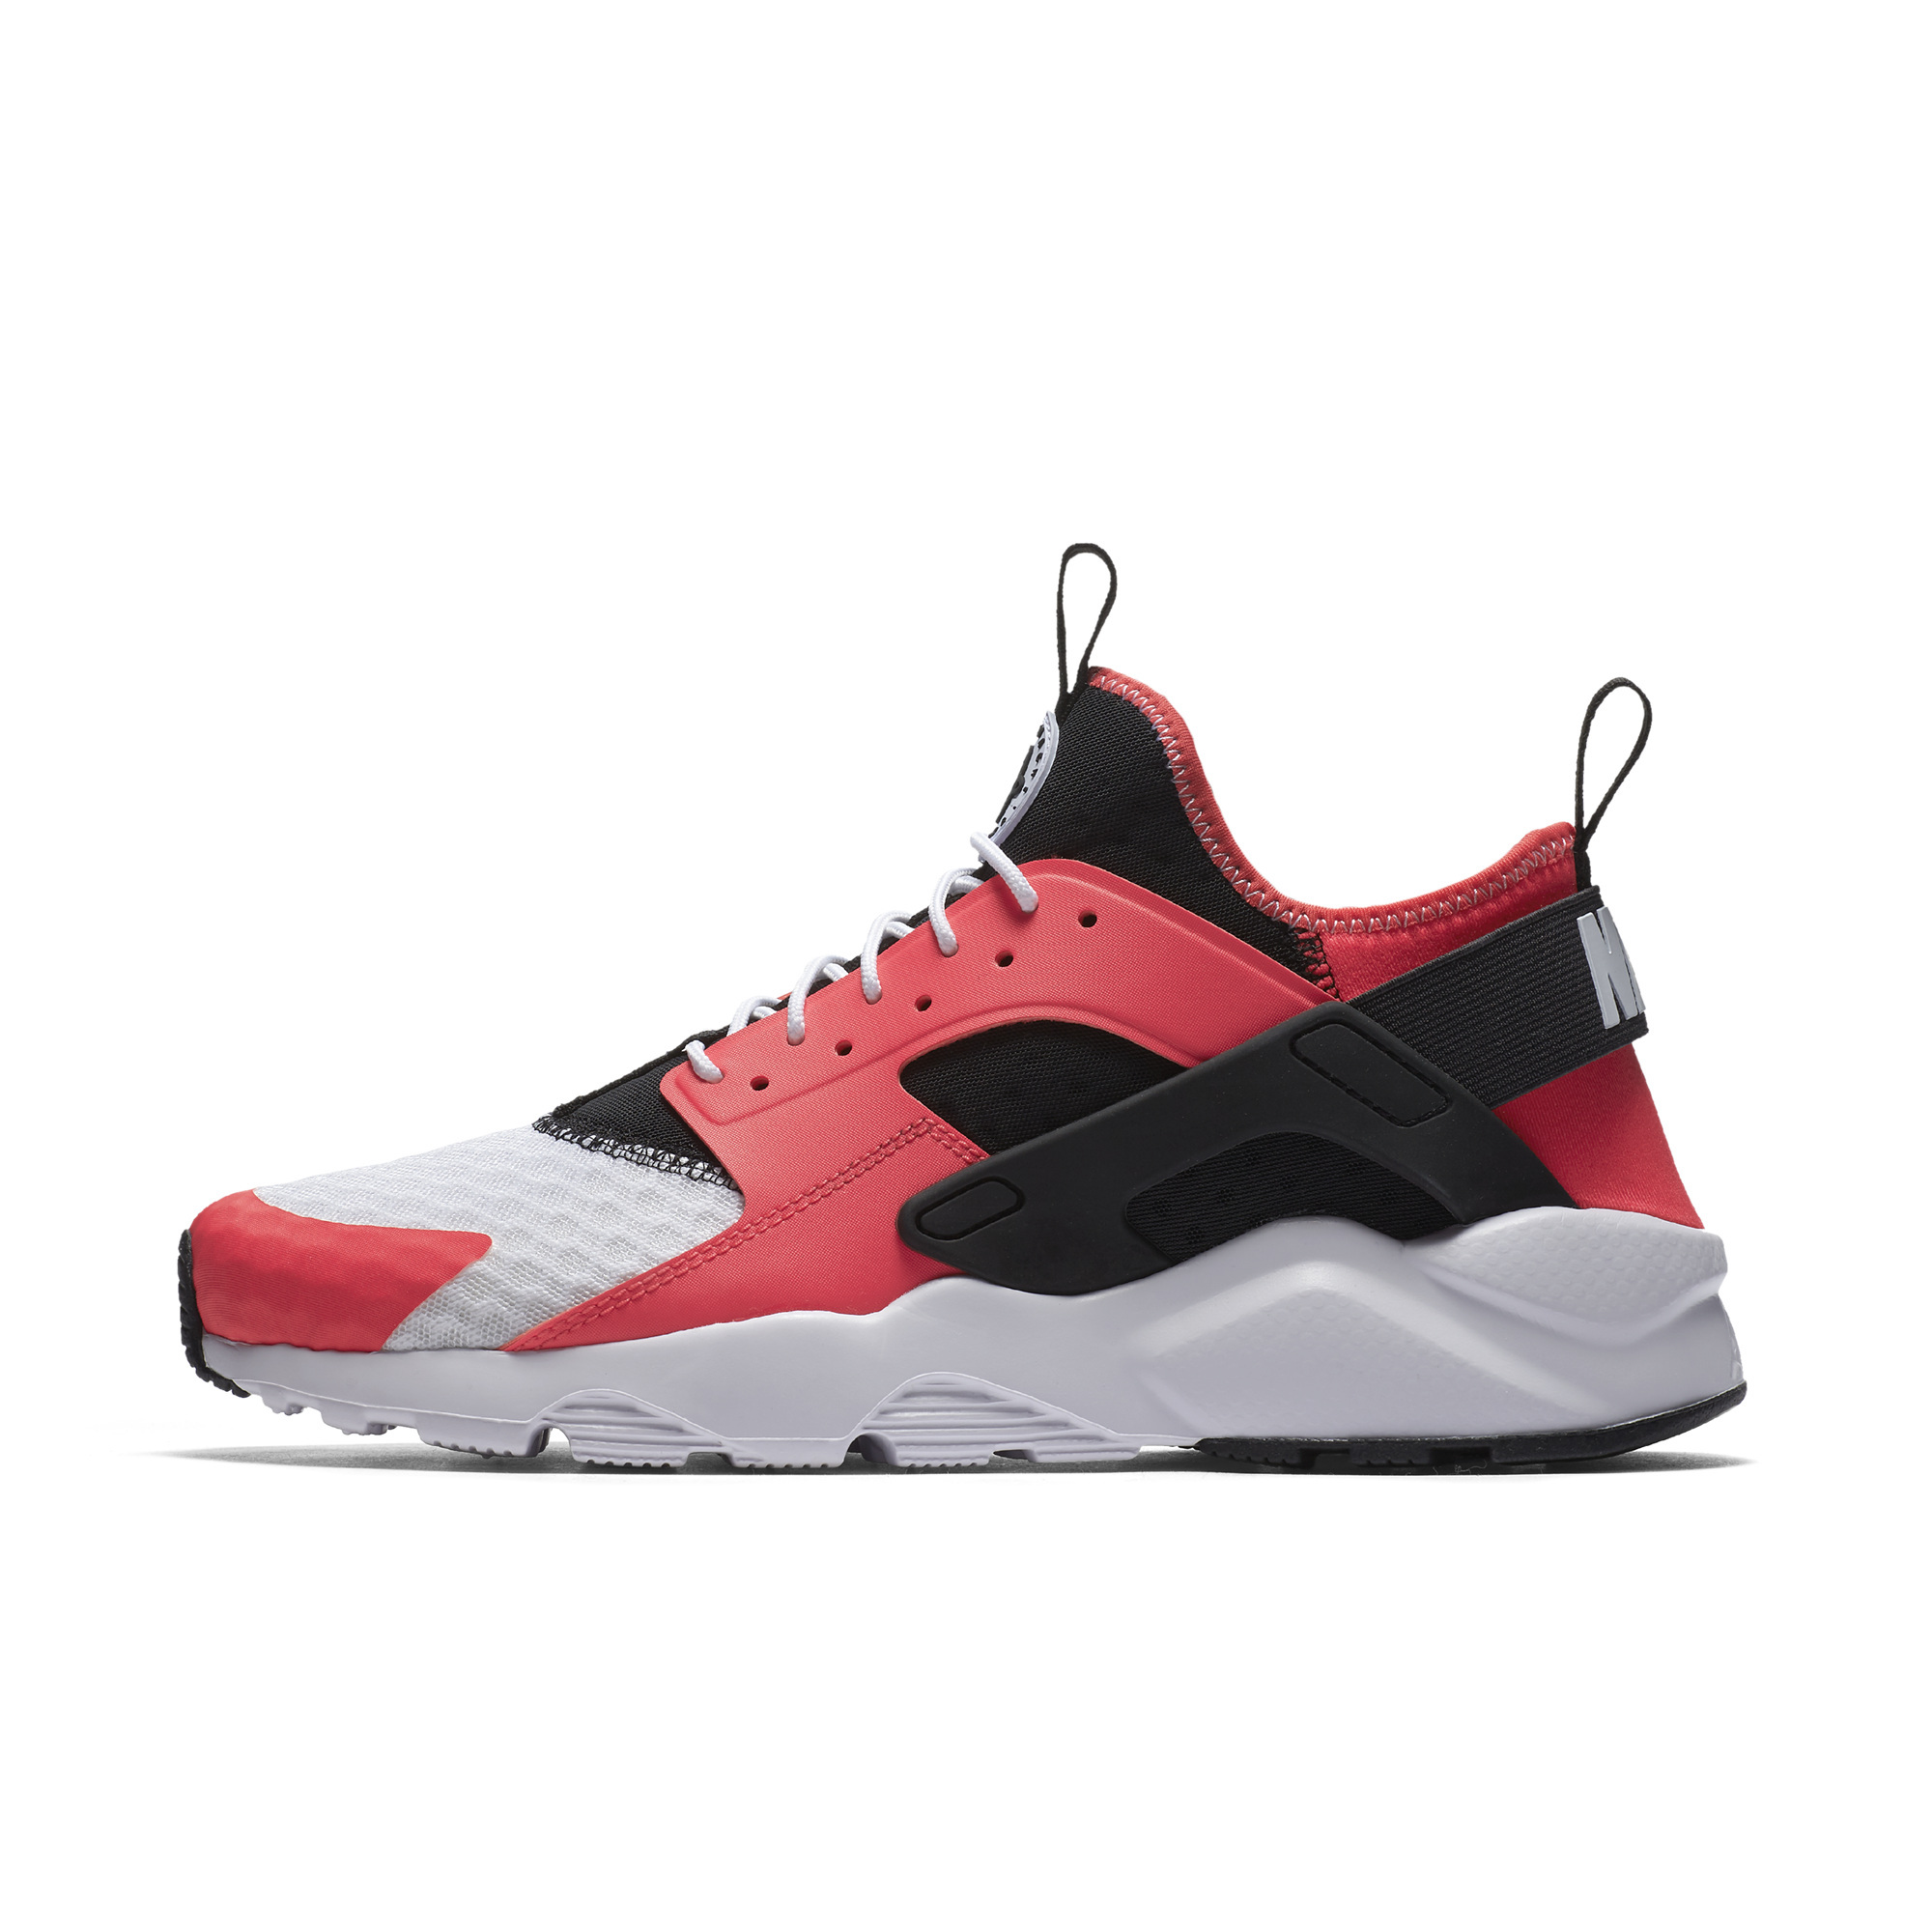 US $75.0 25% OFF|Original Official NIKE AIR HUARACHE RUN ULTRA Men's Running Shoes Sneakers Outdoor Ultra Boost Athletic Durable 819685 in Running